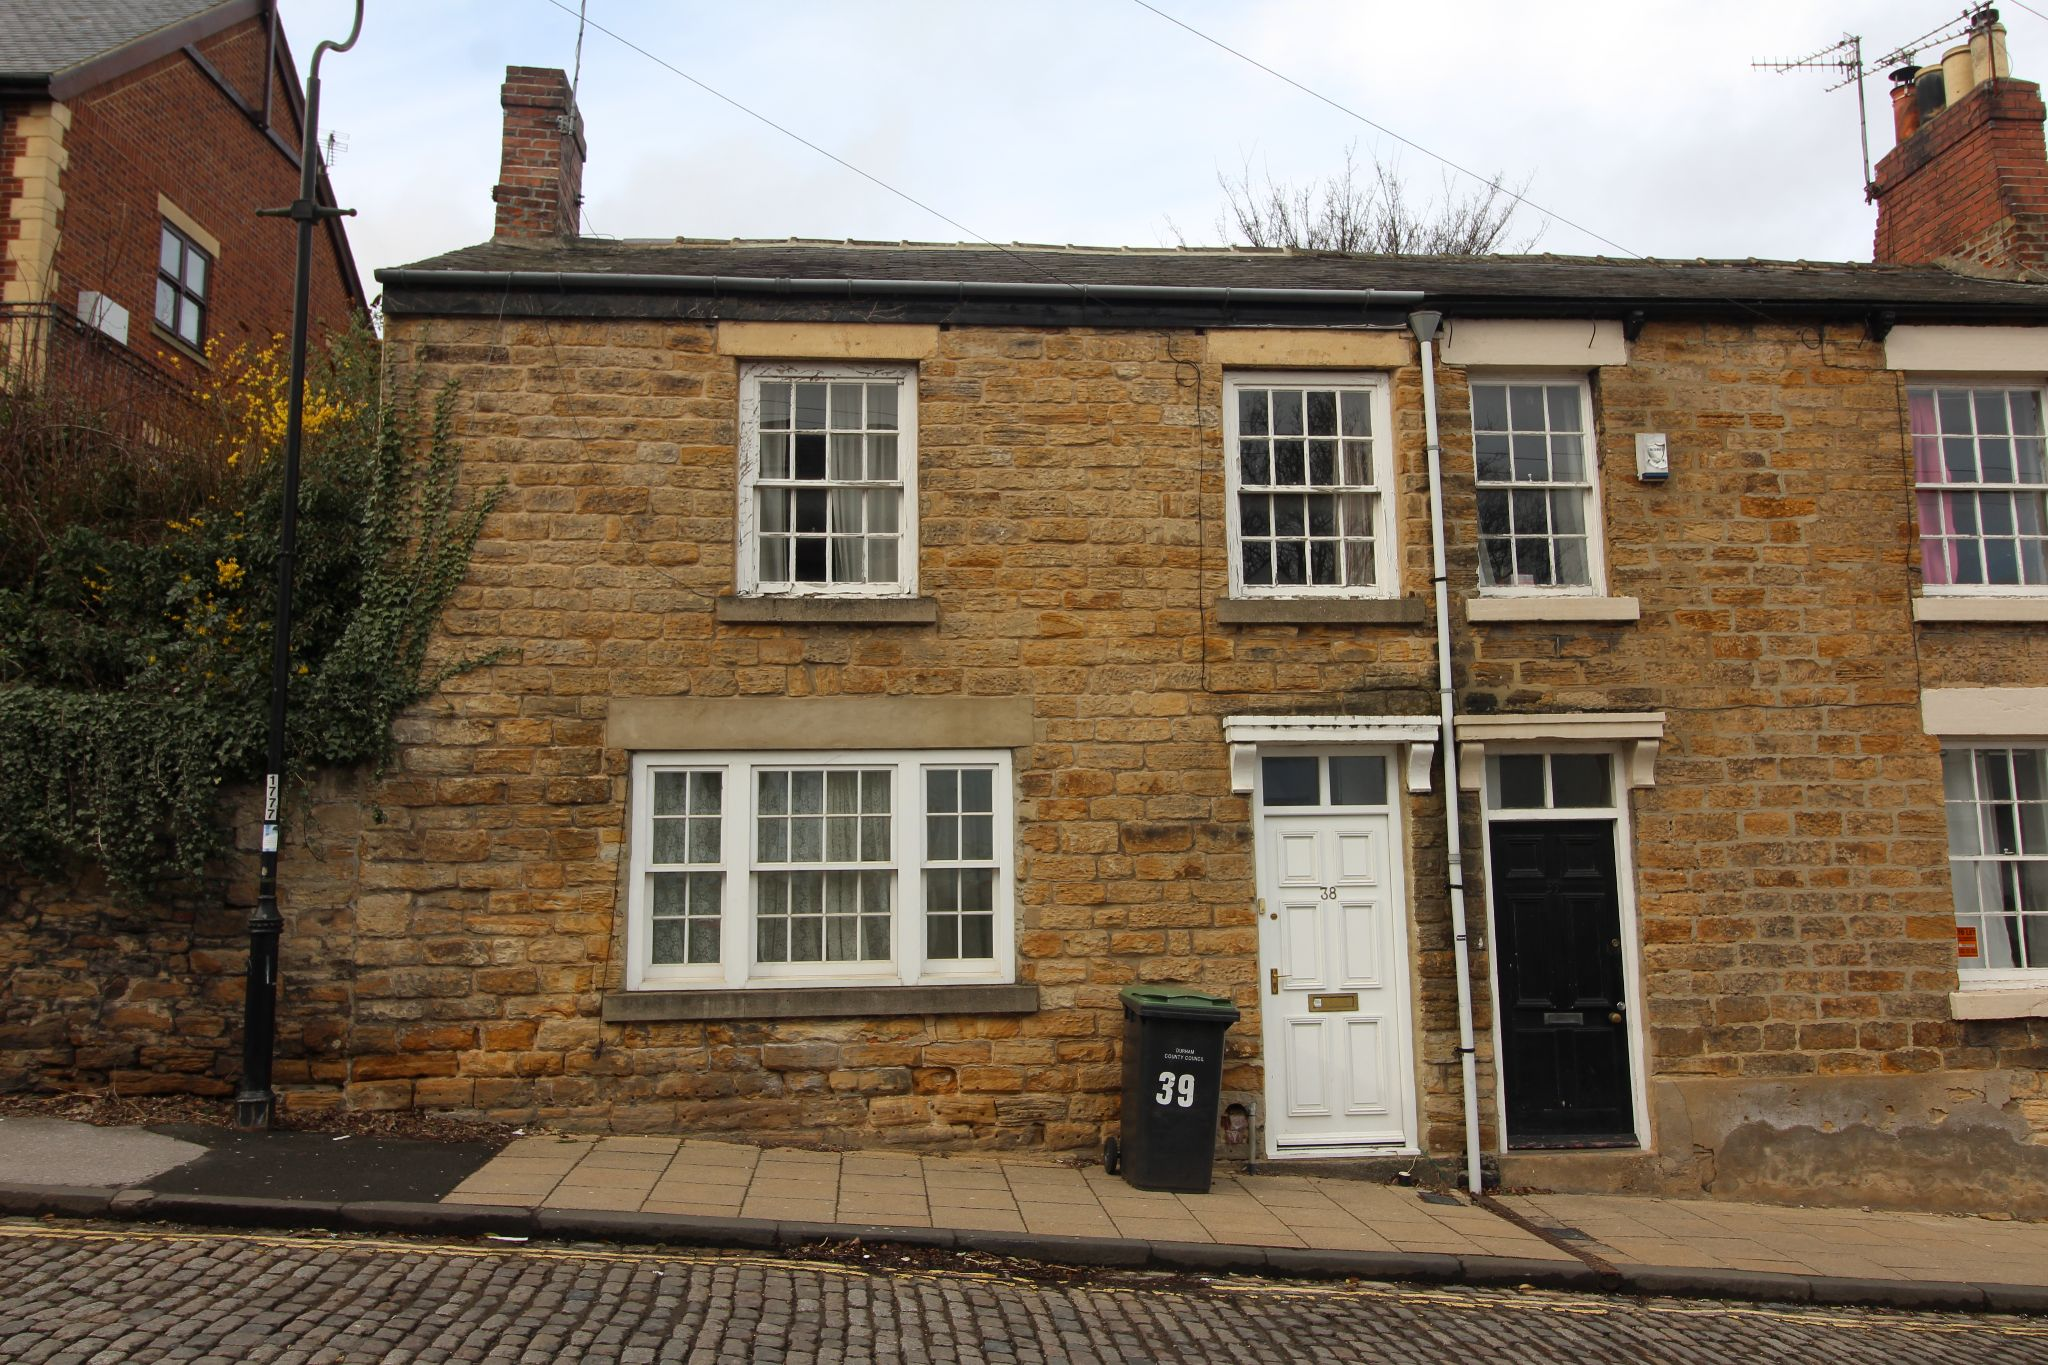 4 bedroom shared house Let in Durham City - Photograph 1.